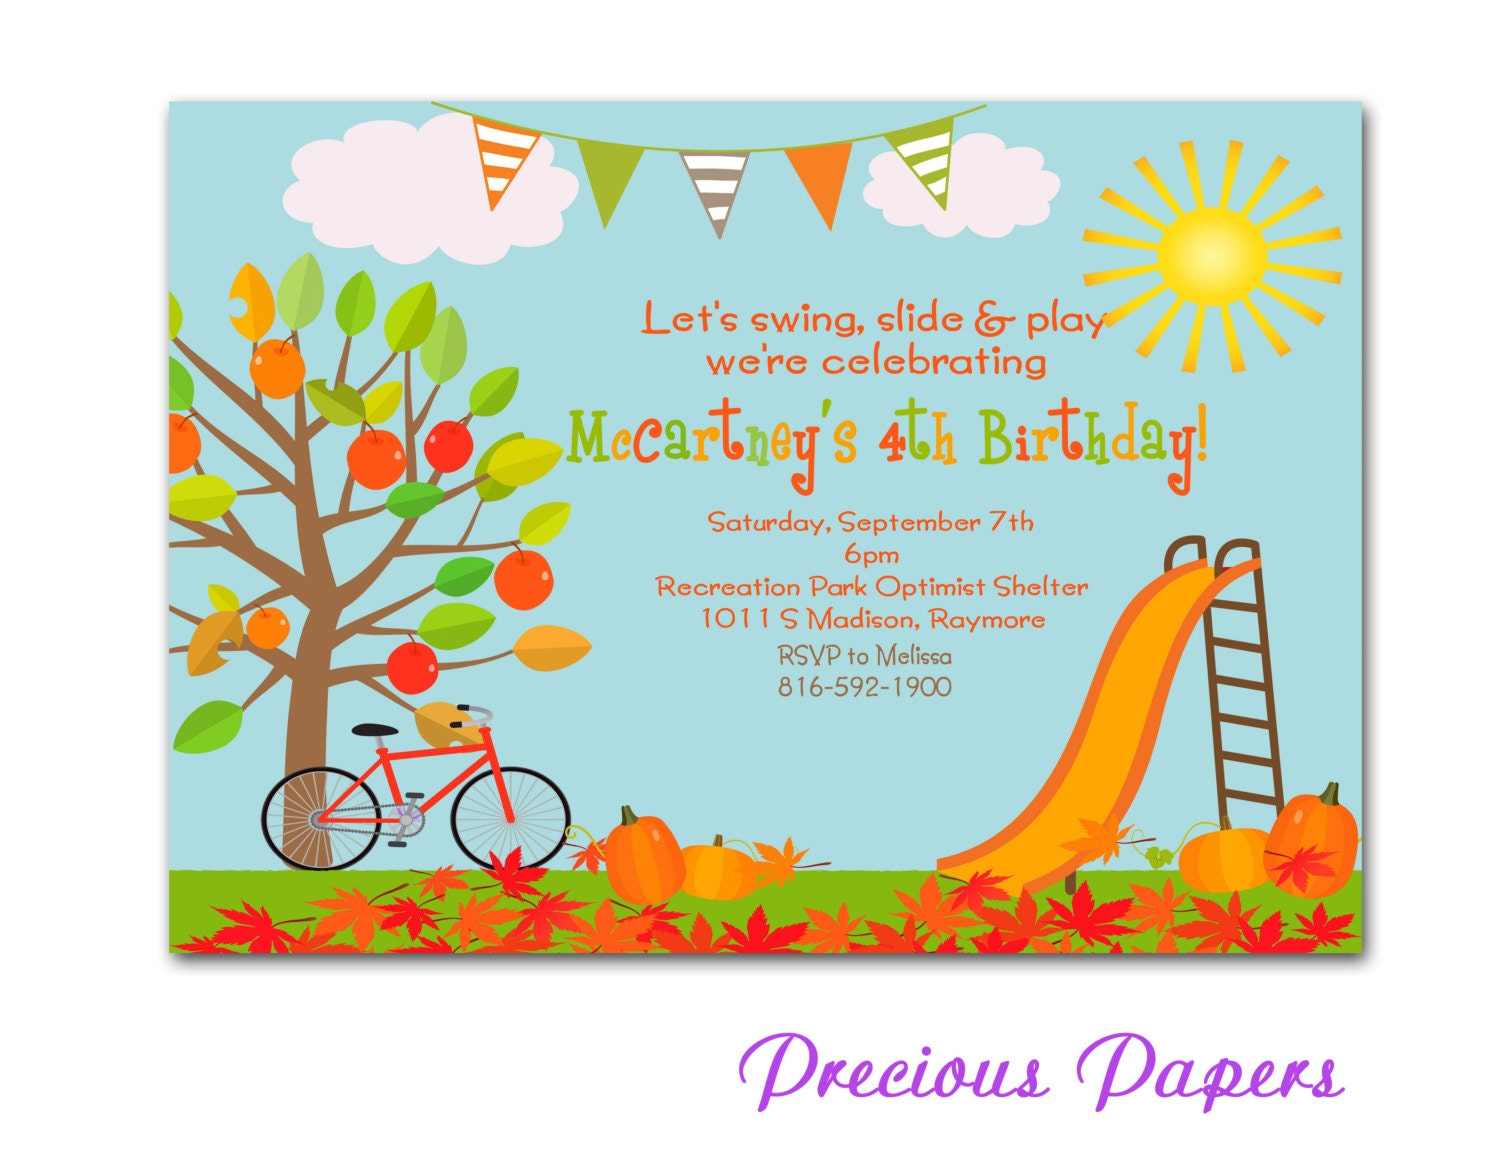 Upload And Print Invitations with good invitations ideas